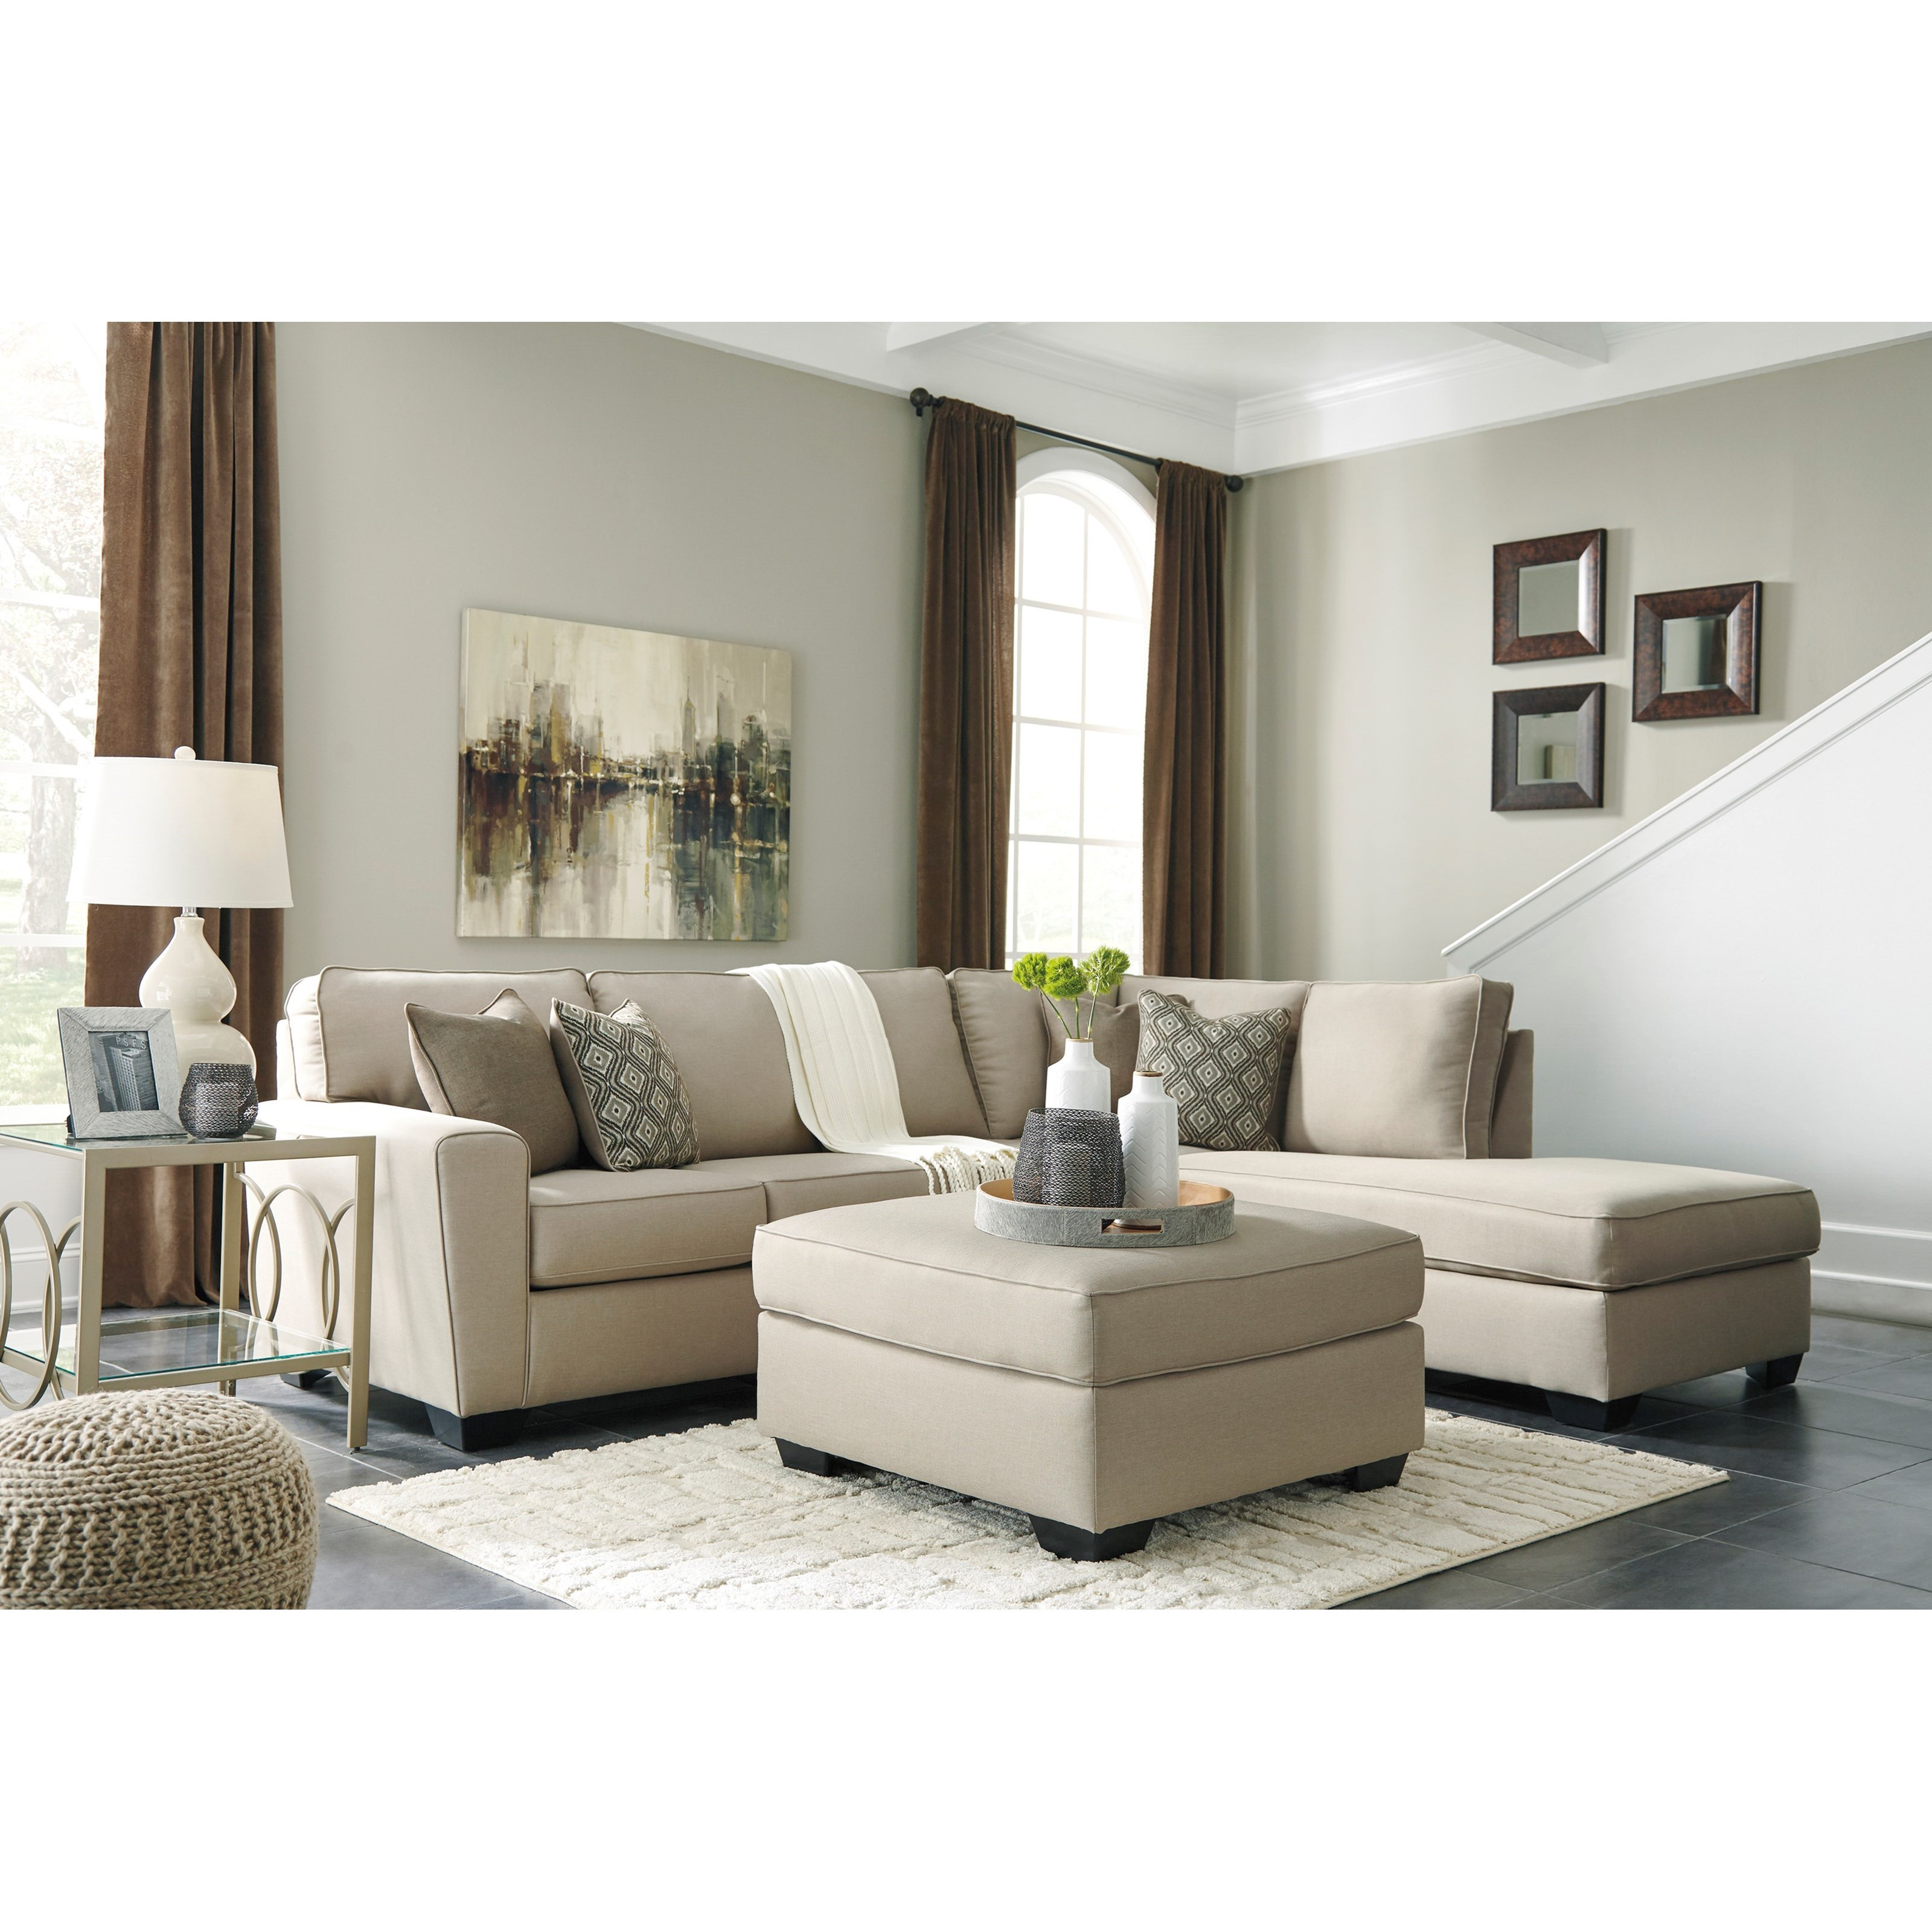 Benchcraft By Ashley Calicho Contemporary Sectional With Right Chaise Royal